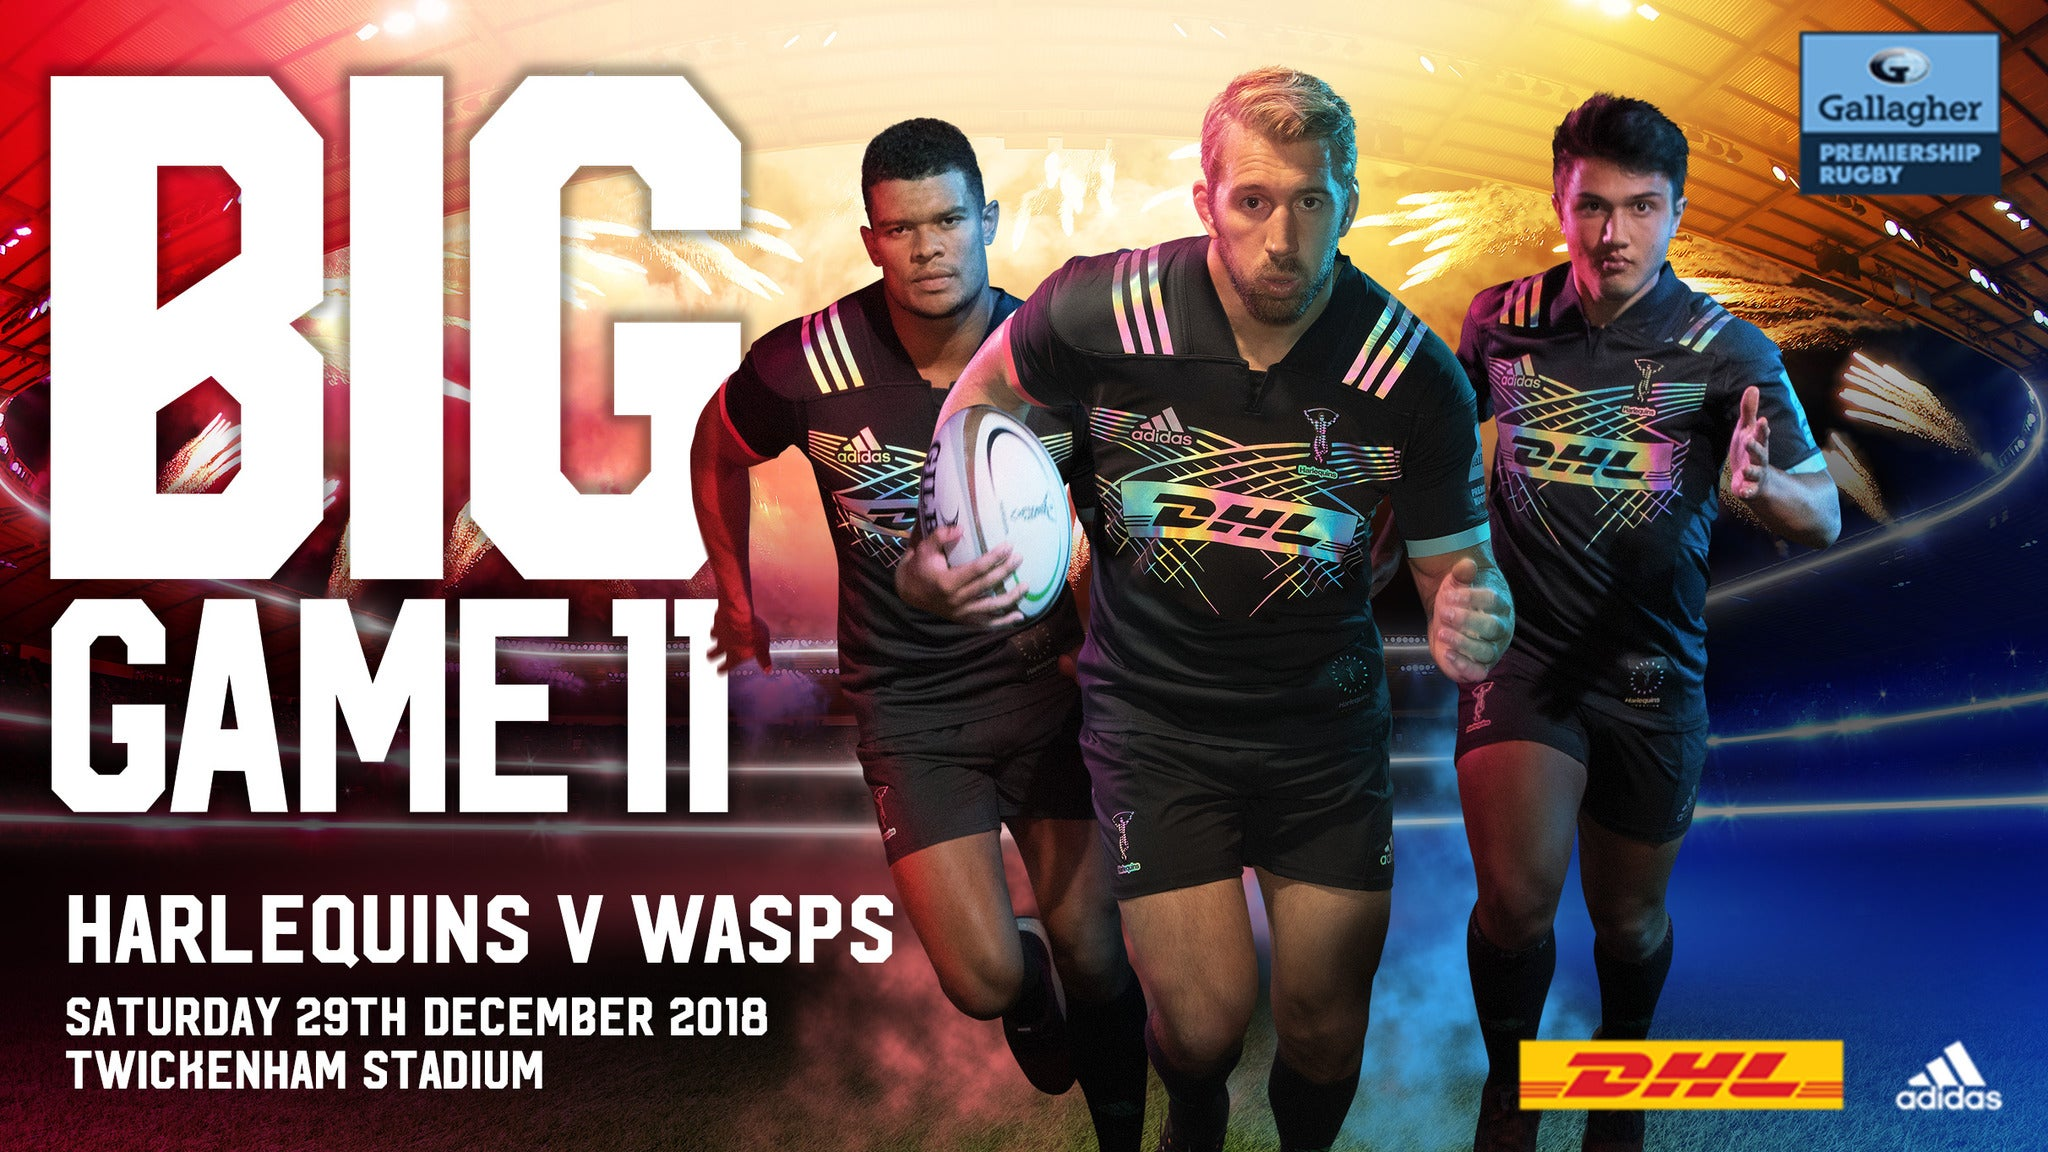 Big Game 11: Harlequins v Wasps Seating Plans